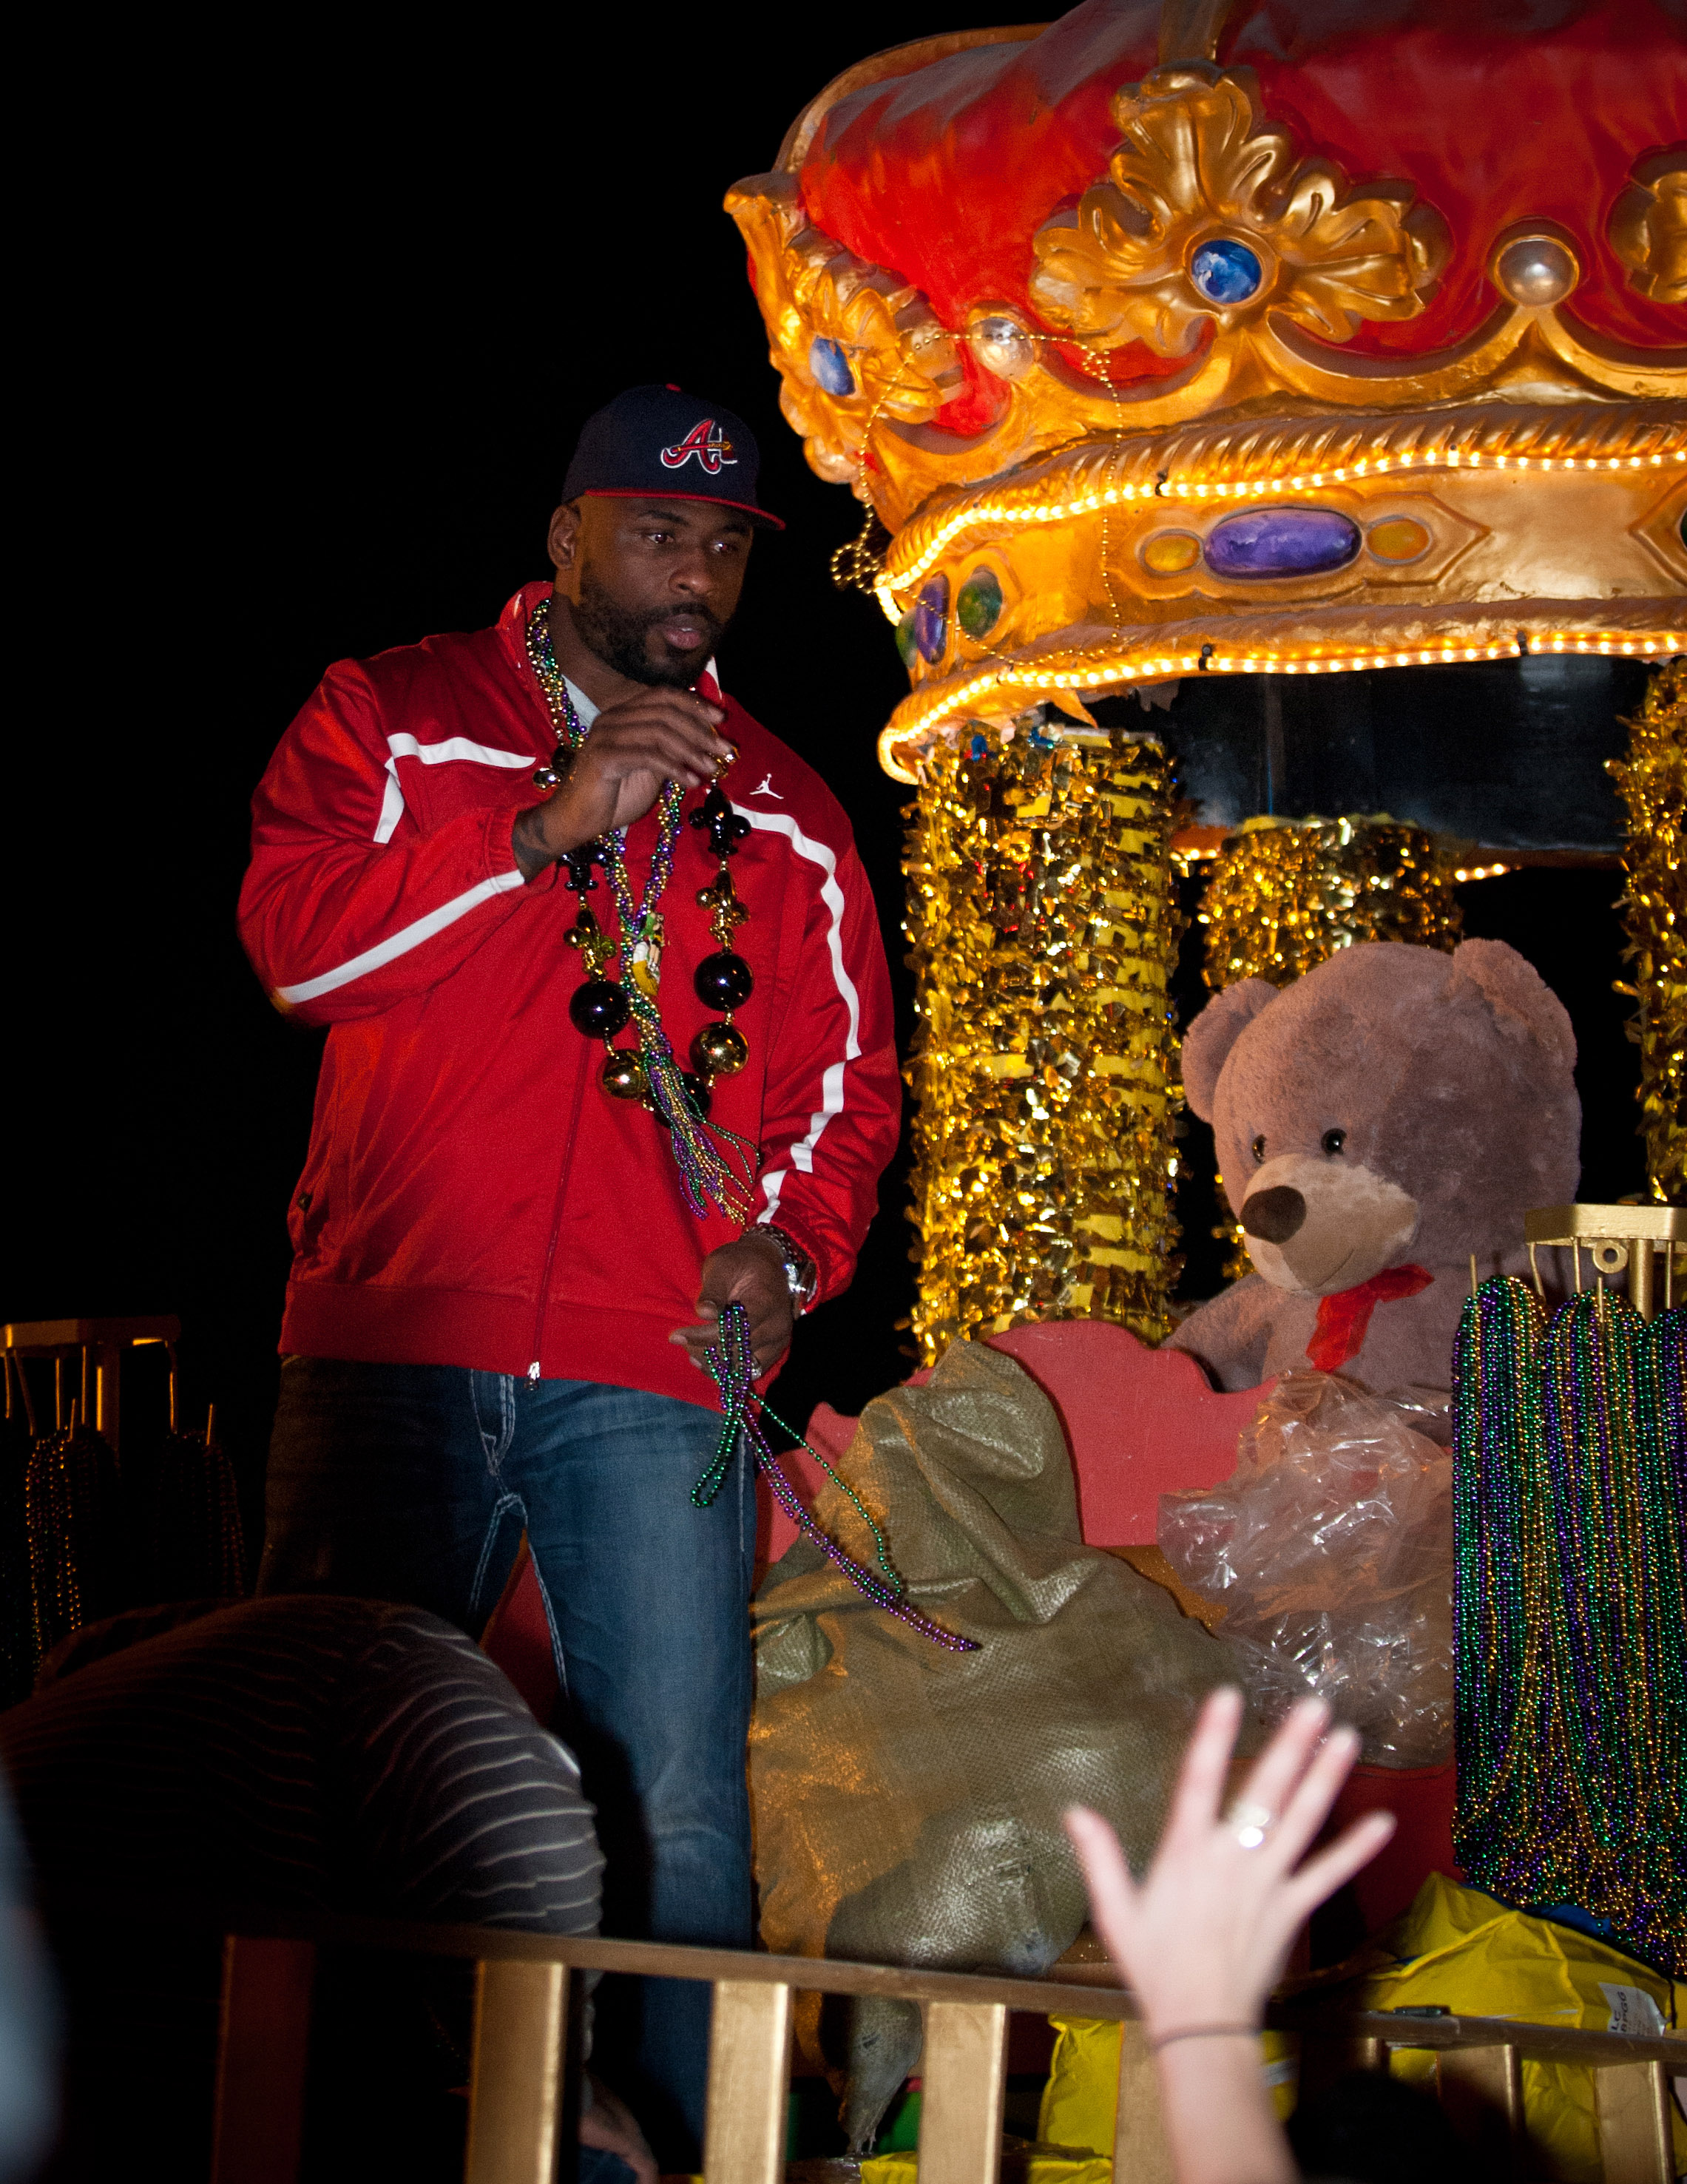 Brandon Jacobs got a hero's welcome in his hometown. (Photo courtesy of Shannon Atkinson)